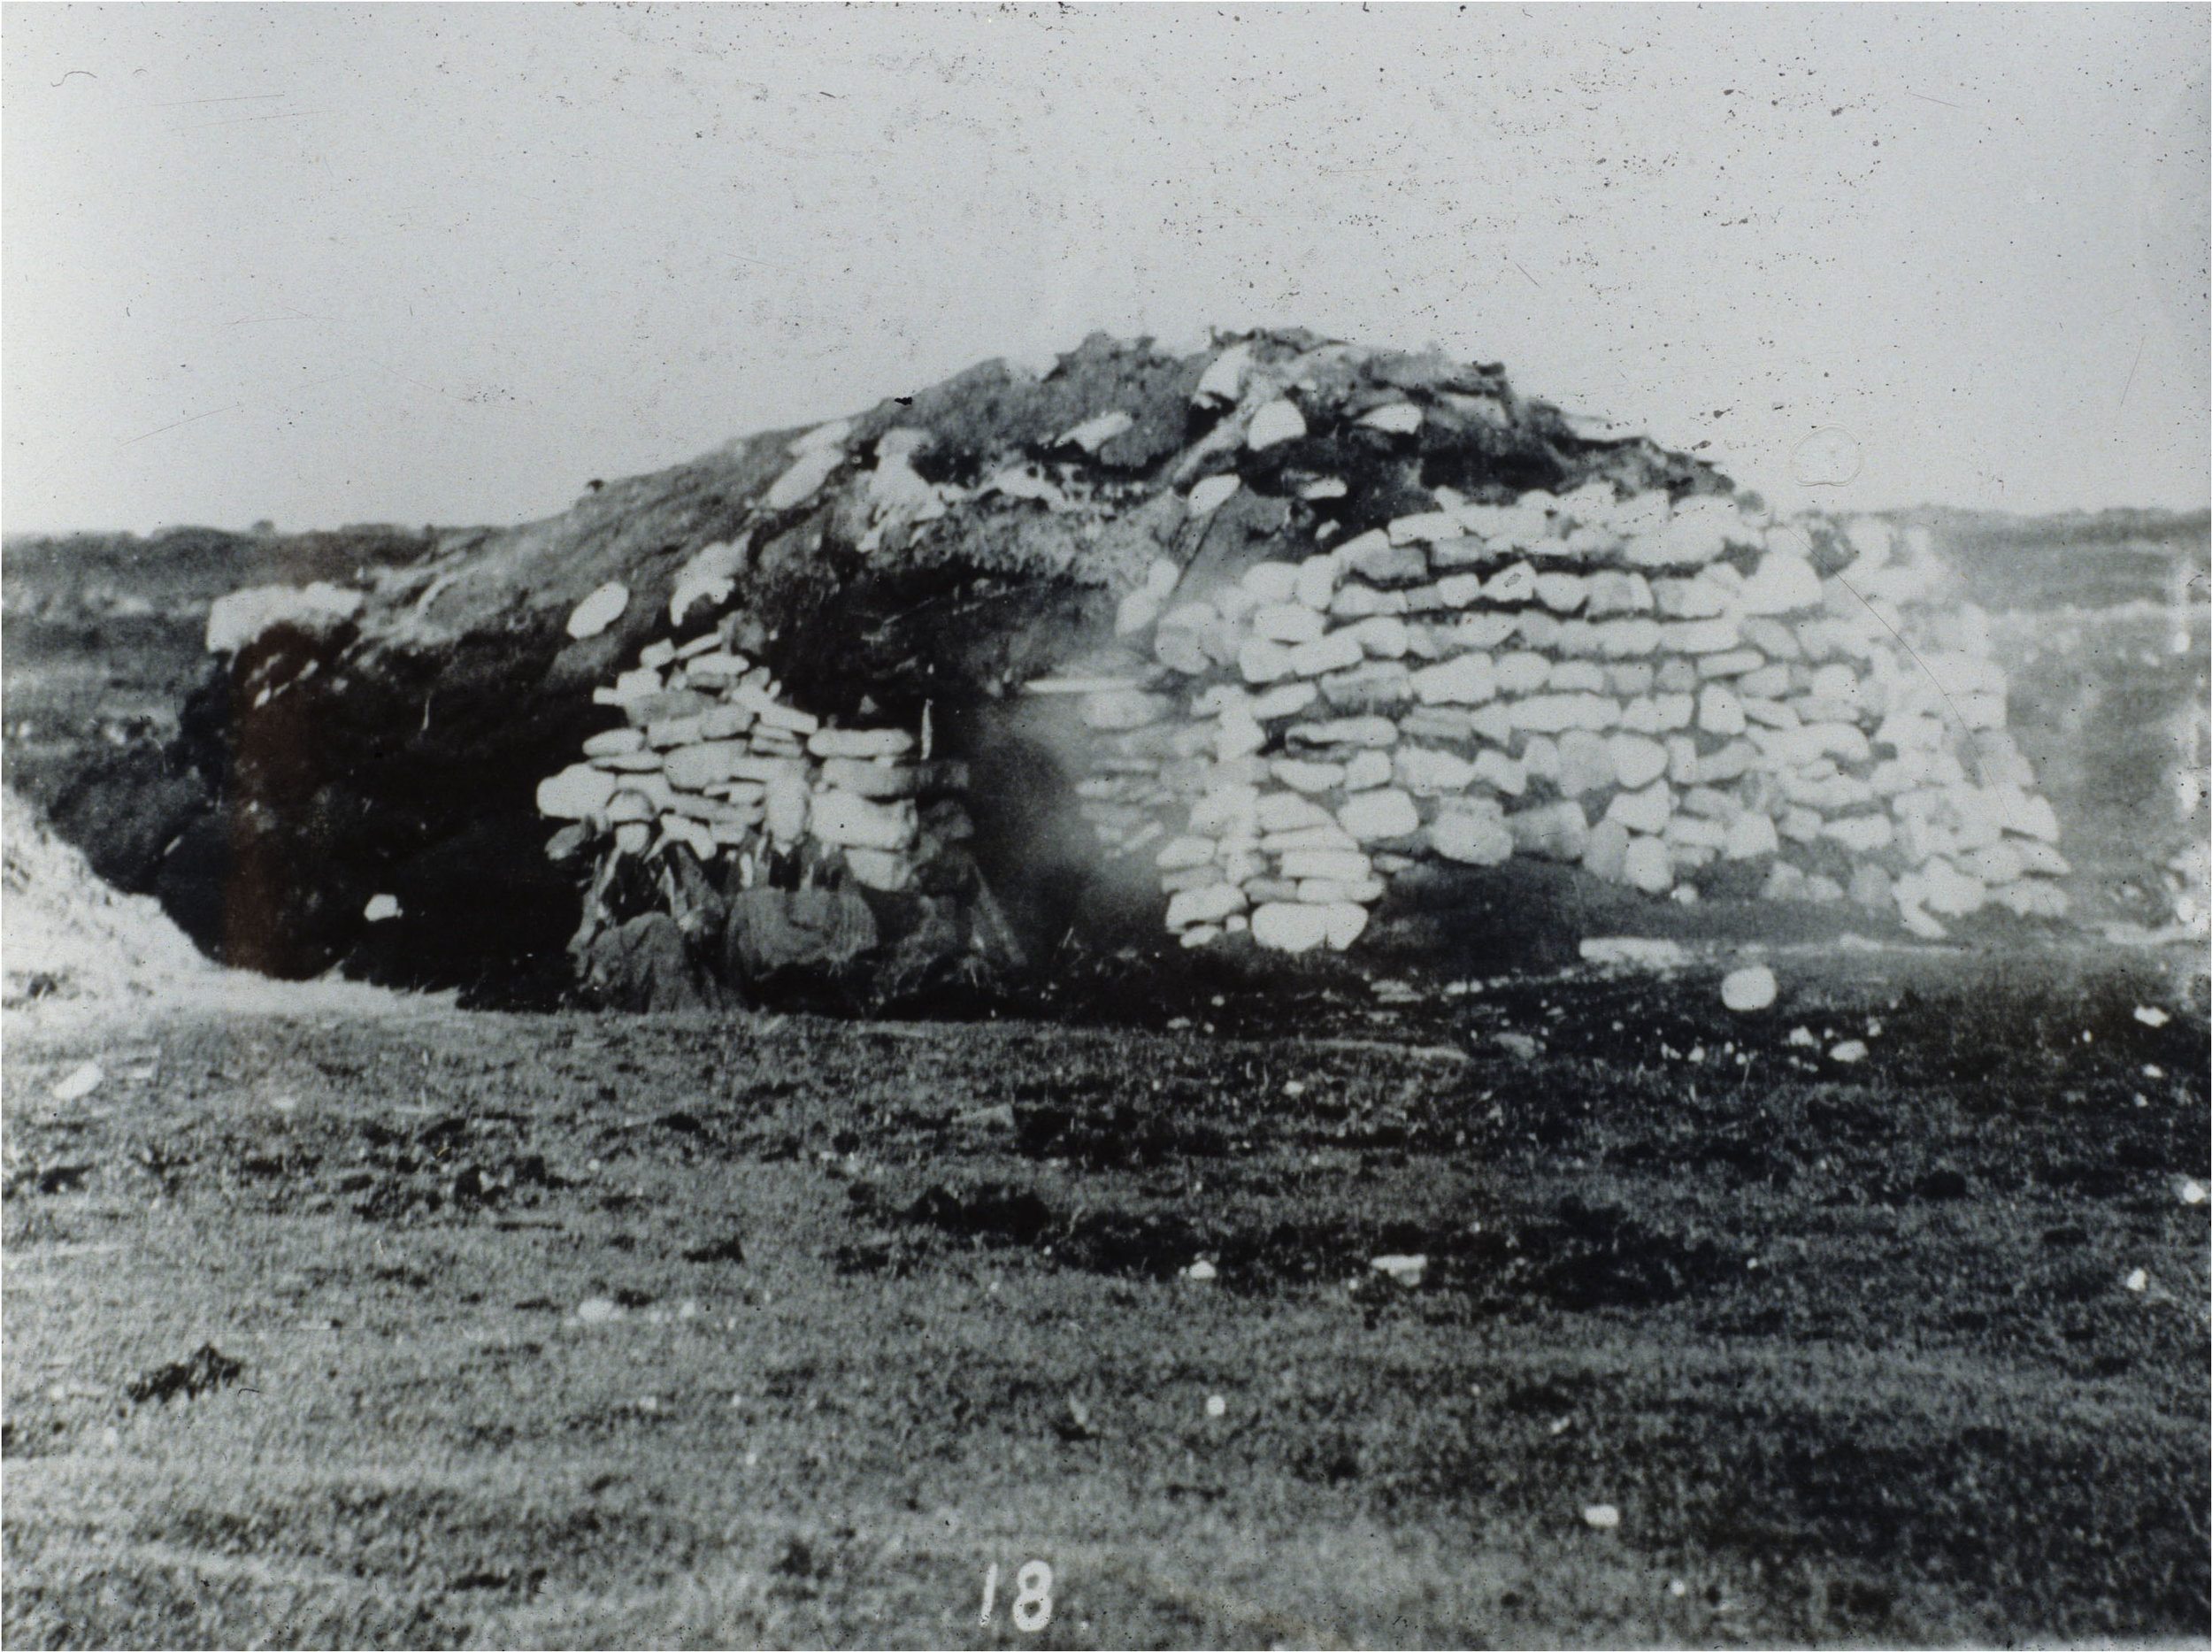 Above is an example of an Irish hut. It is believed that this is the type of dwelling that the canal workers would have lived in during this time.